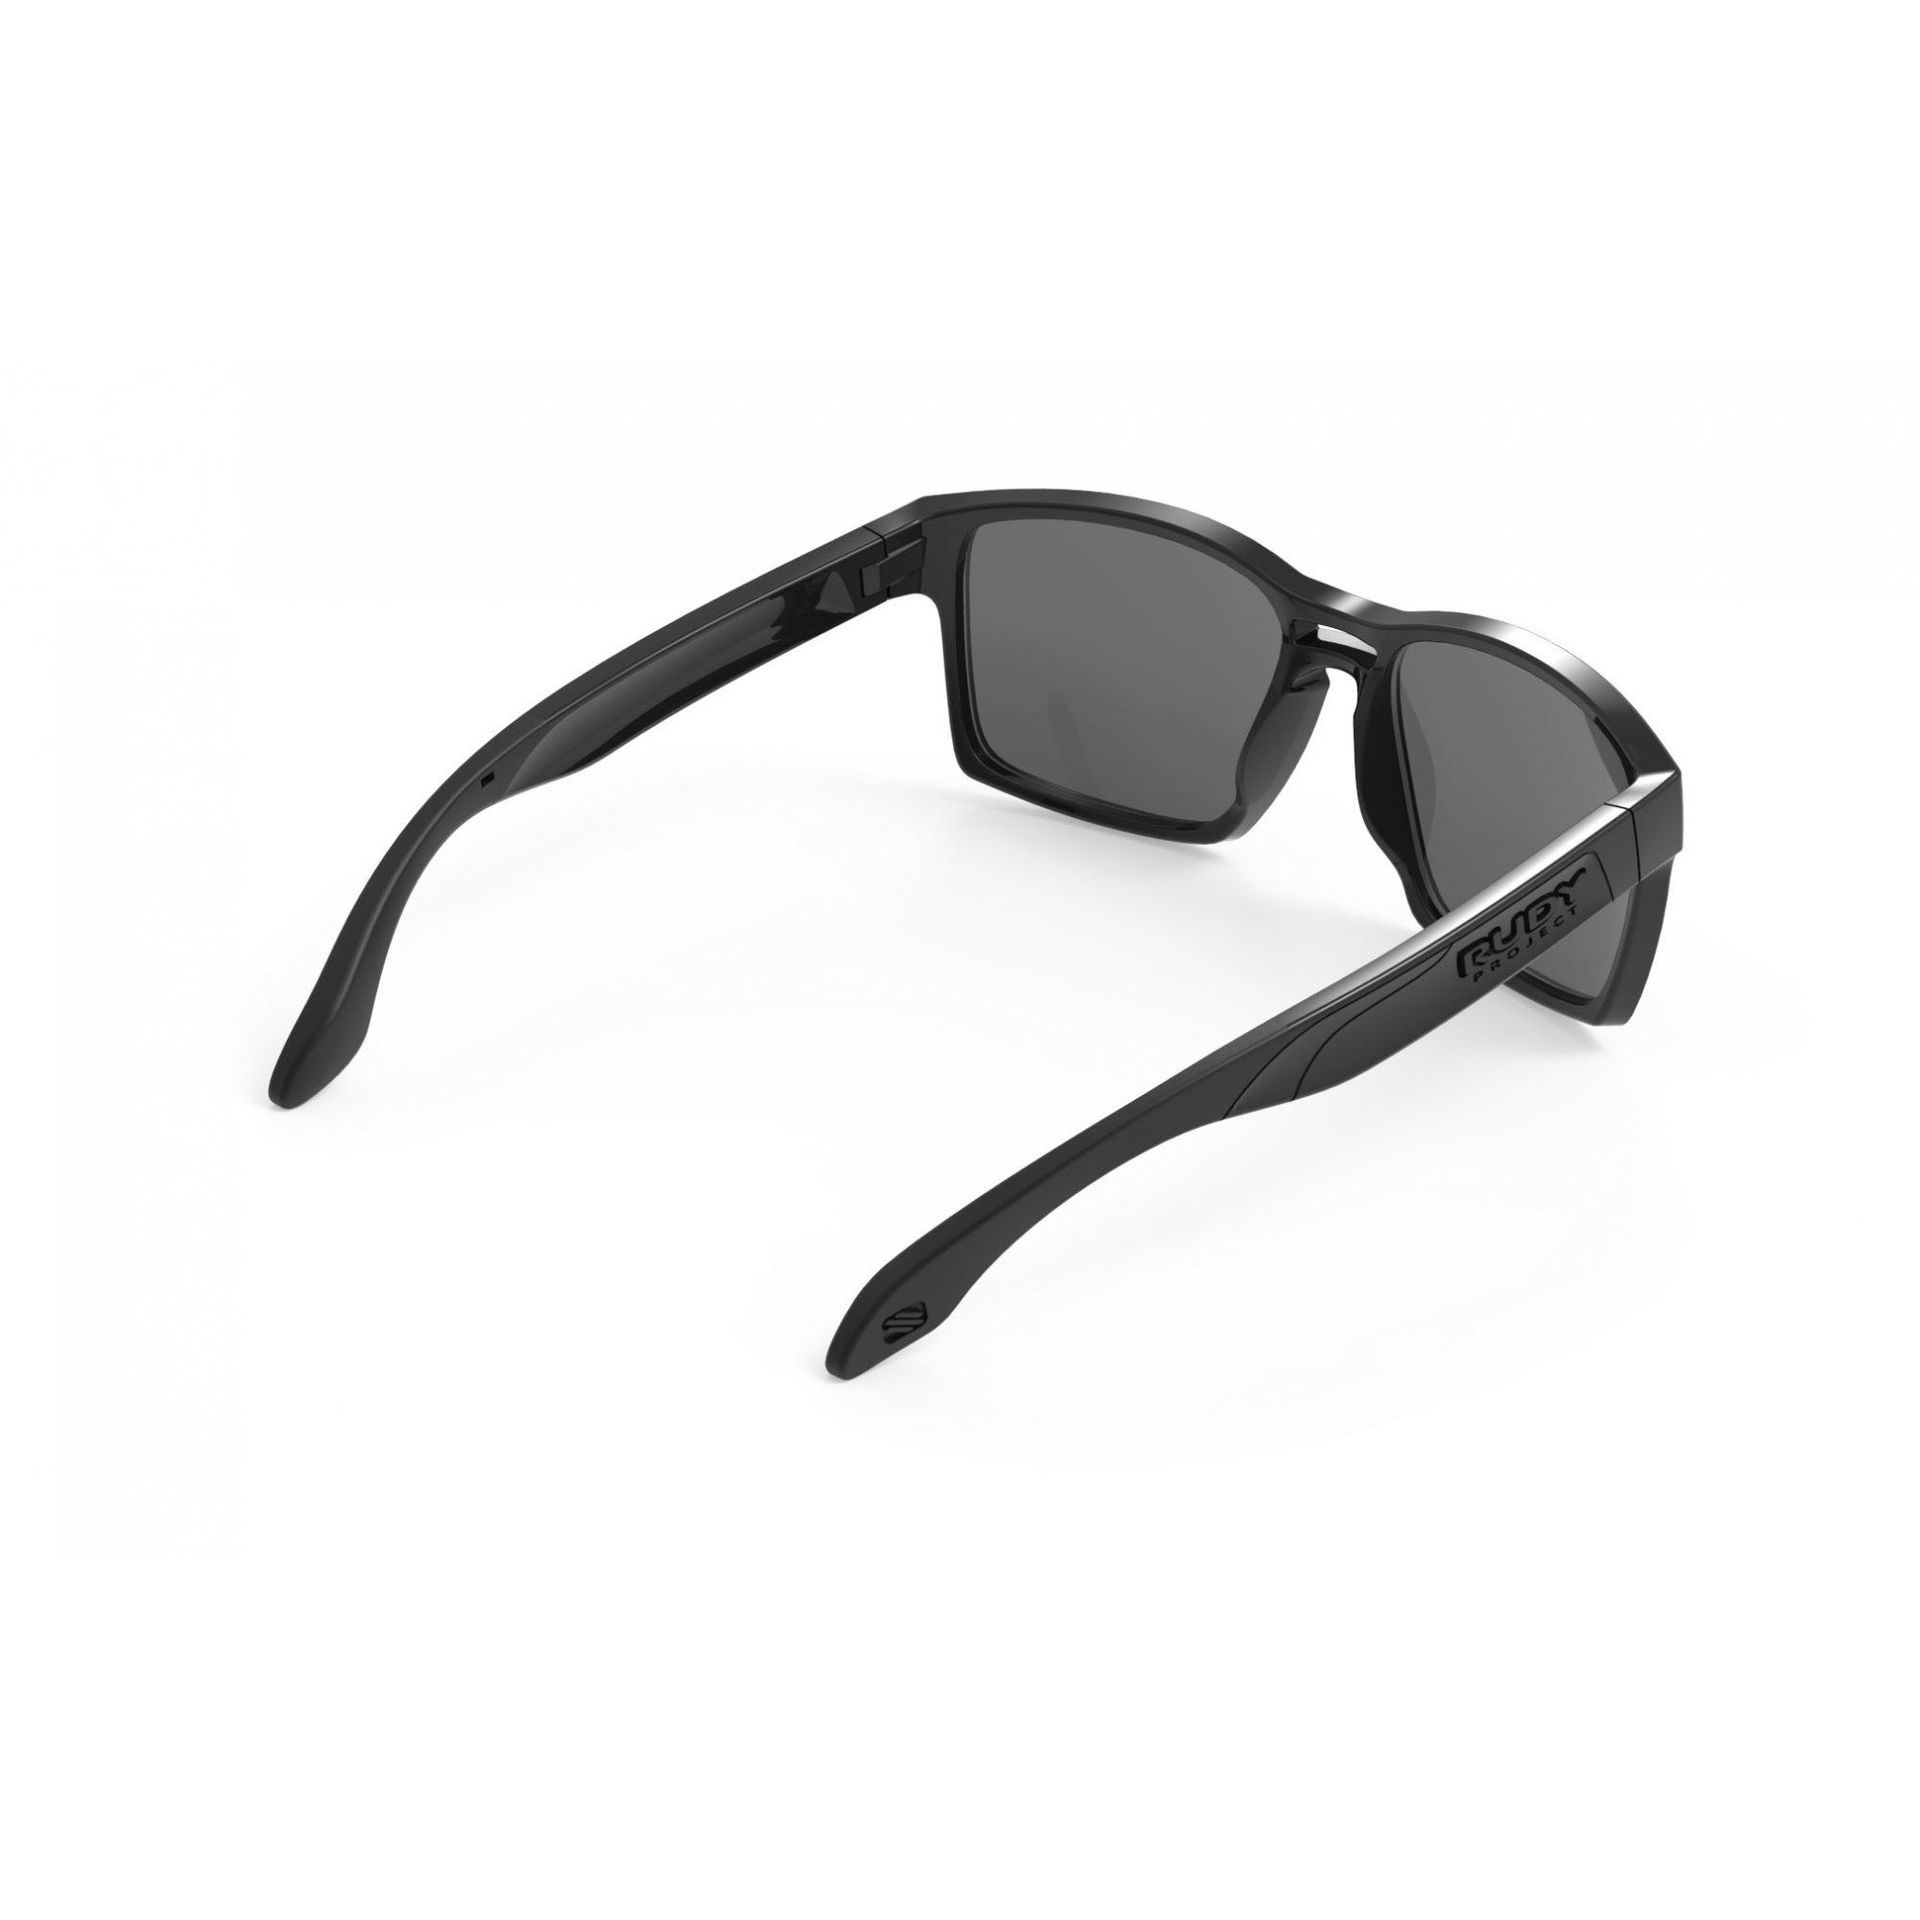 OKULARY RUDY PROJECT SPINAIR 57 BLACK + SMOKE BLACK SP571042 5